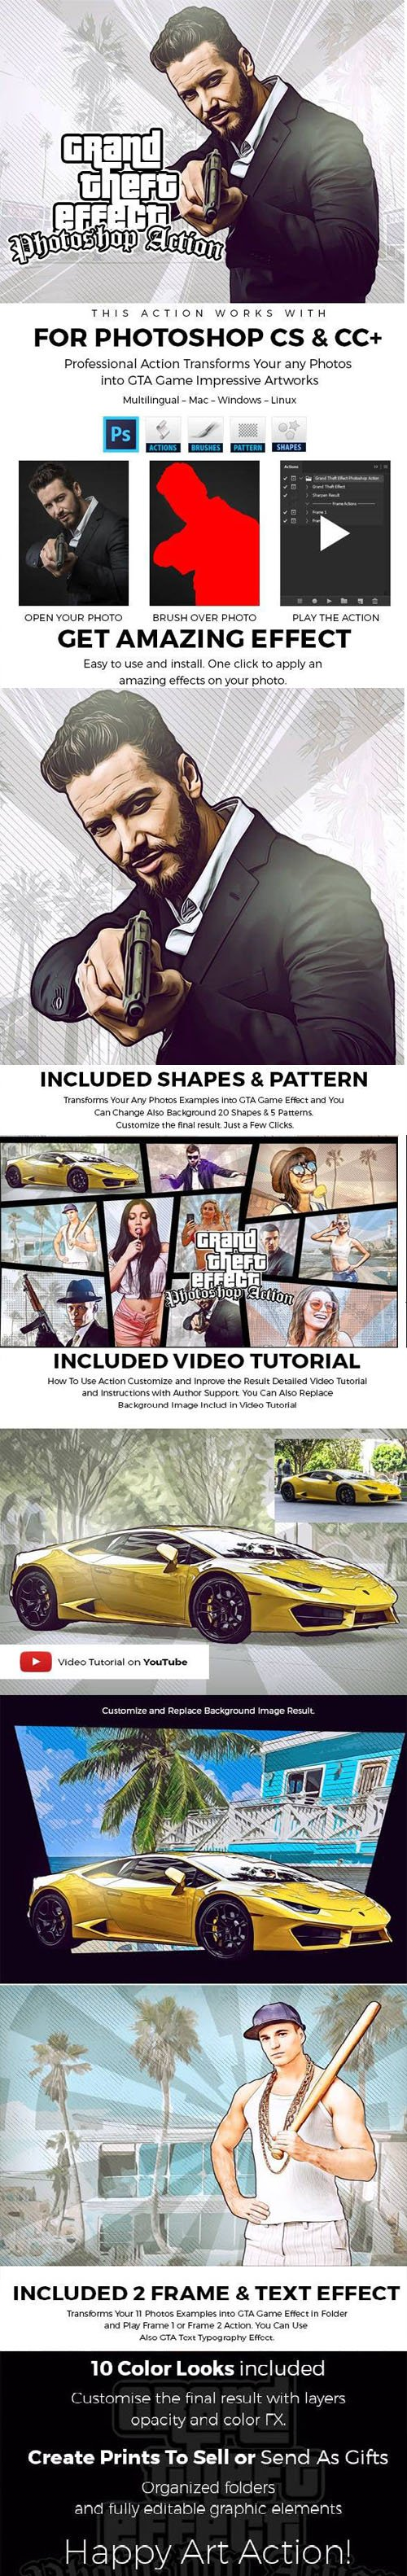 Grand Theft Effect - Photoshop Action